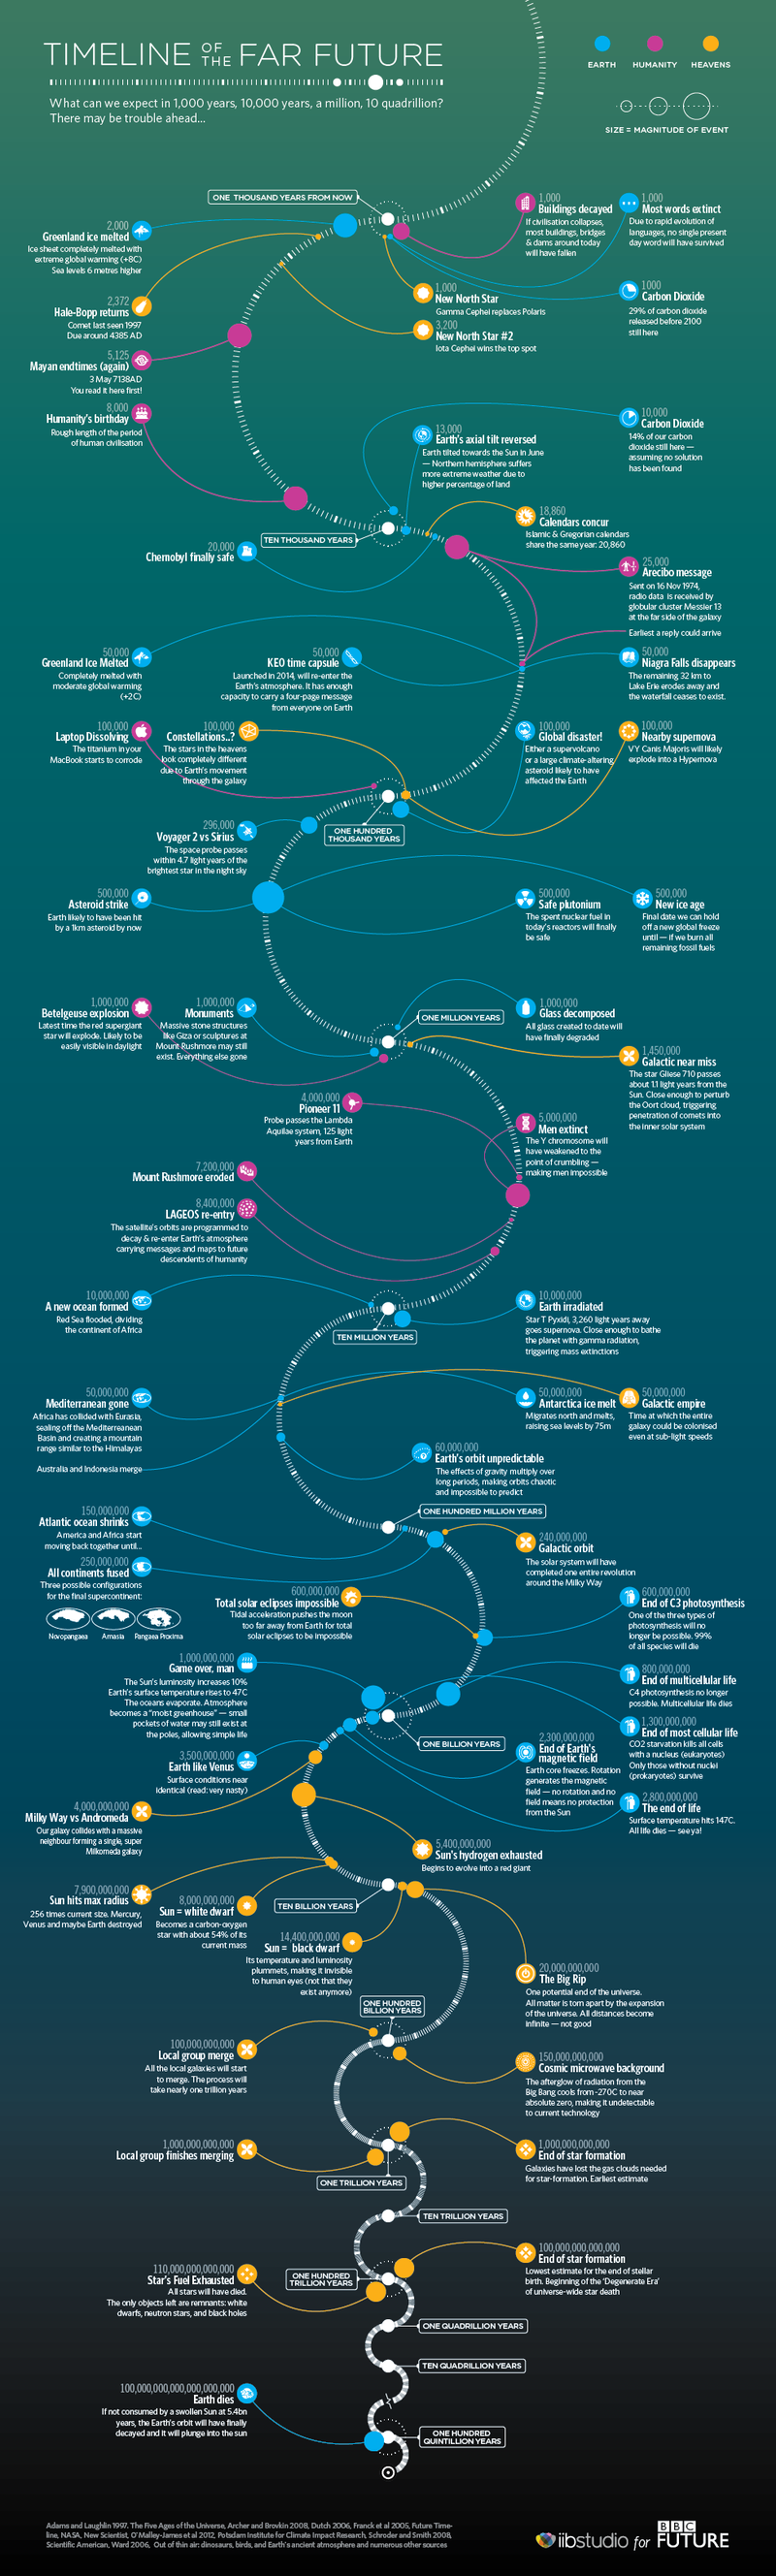 Speculative timeline looks quadrillions of years into our future